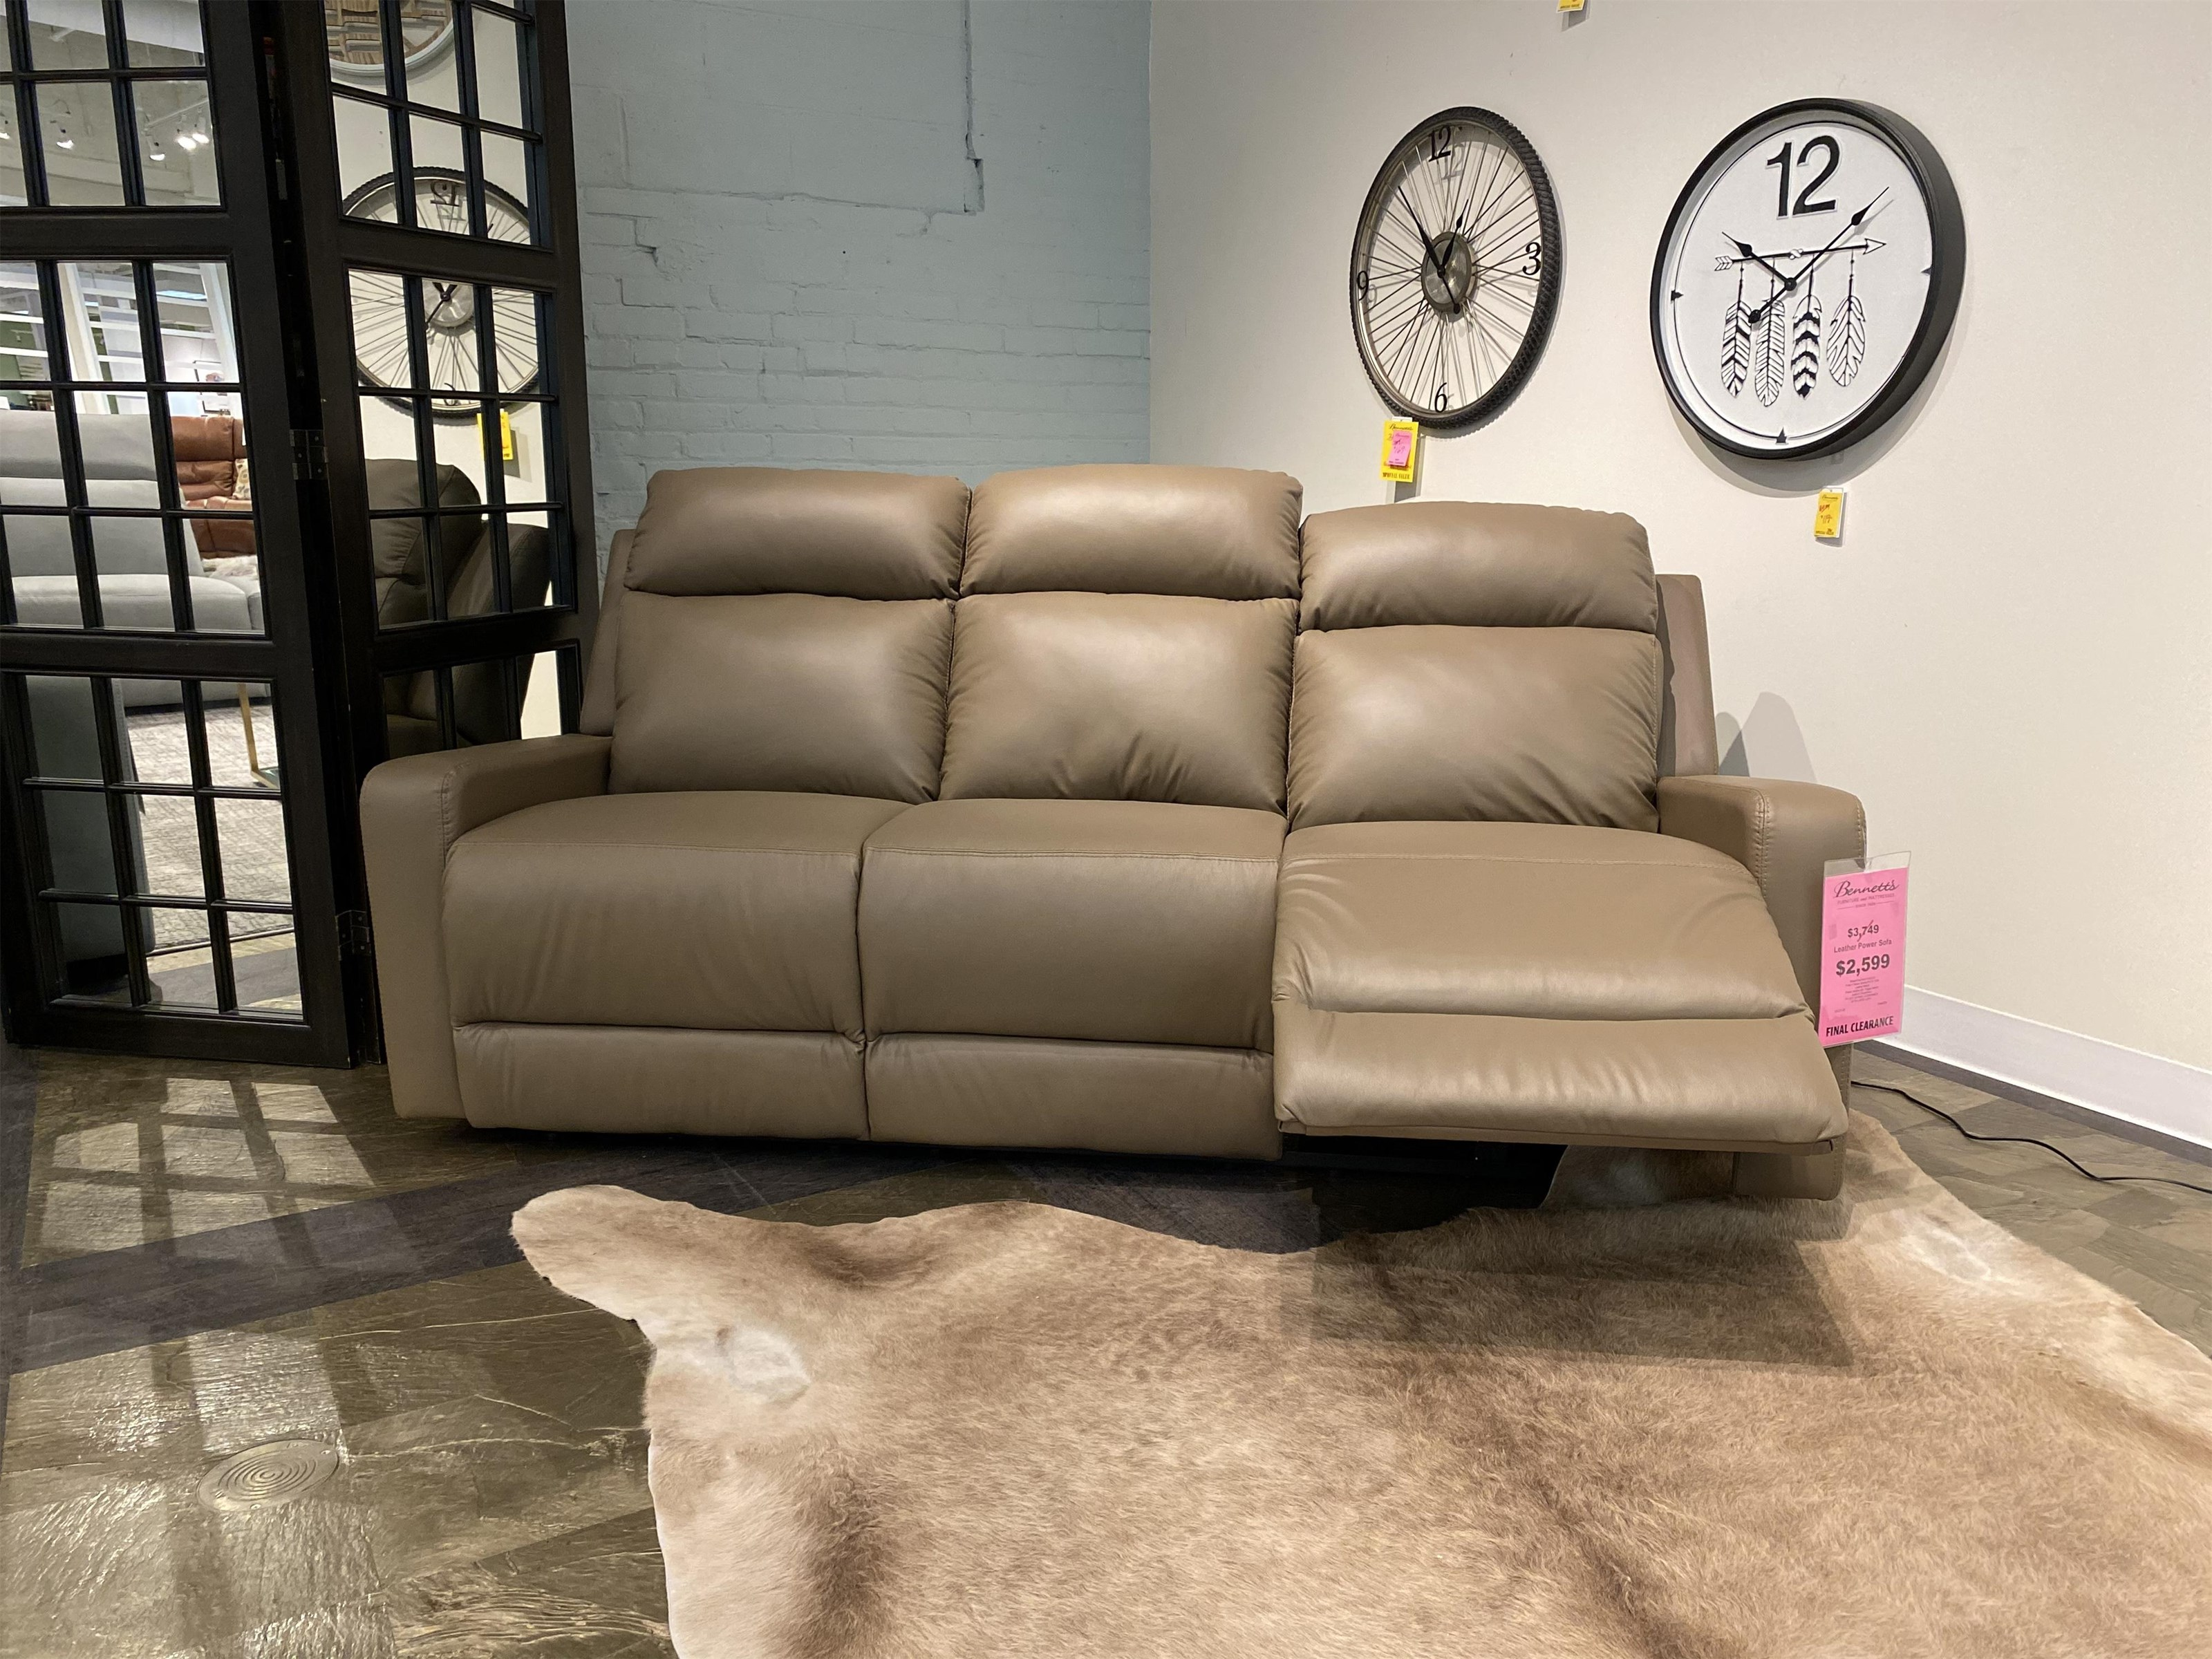 Rockwood Fairmont Leather Reclining Sofa Bennett S Furniture And Mattresses Reclining Sofas